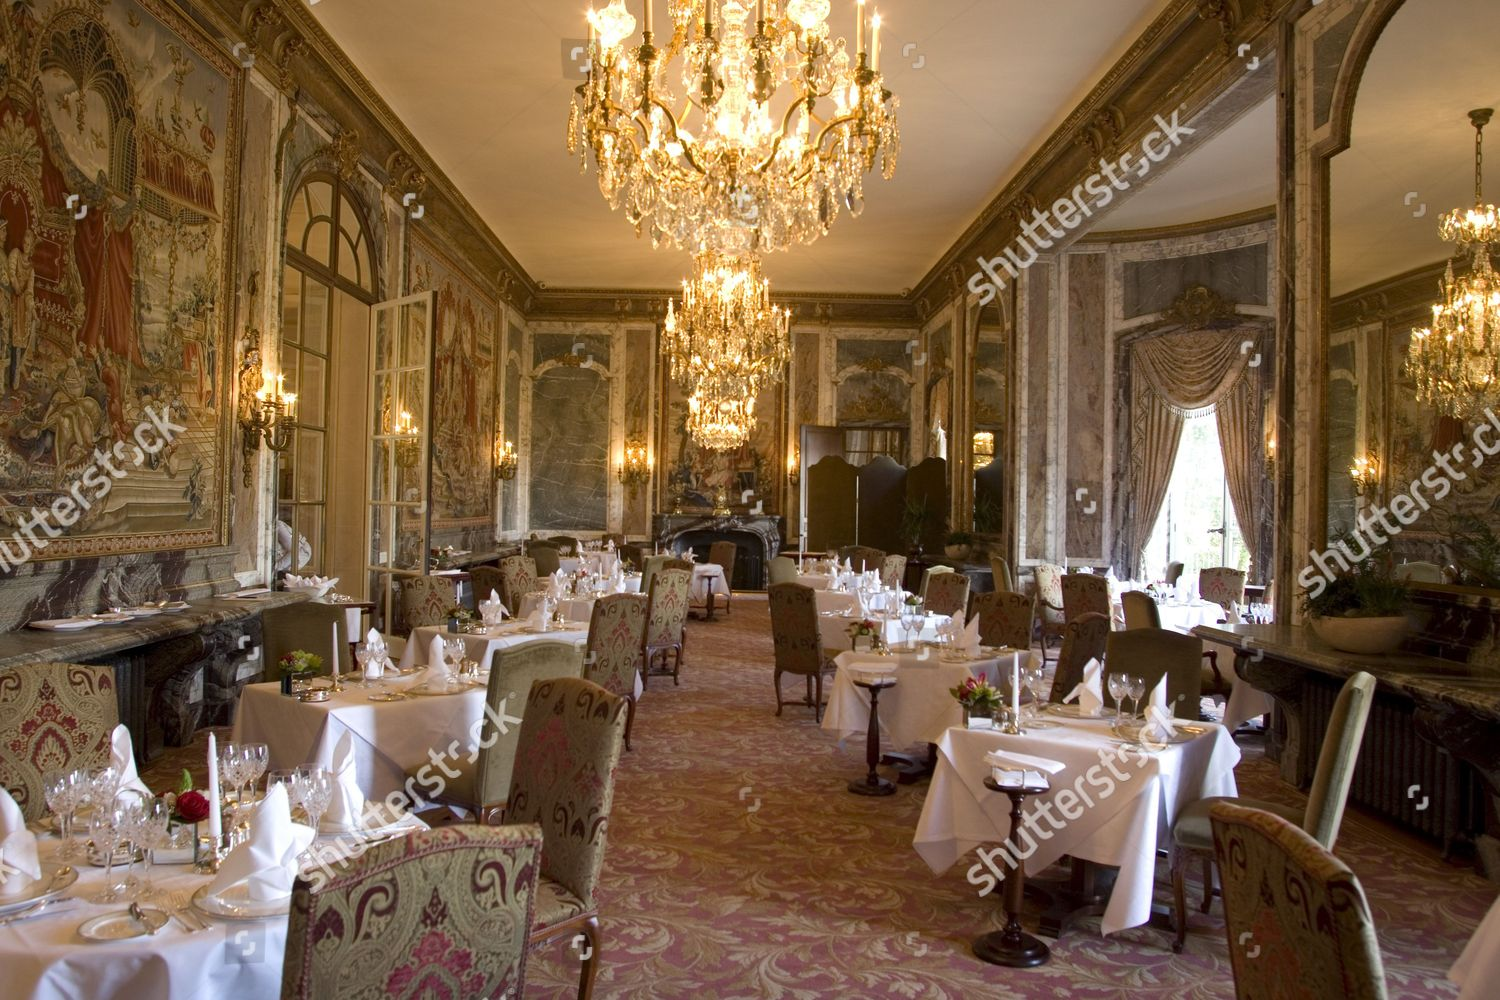 luton hoo restaurant deals